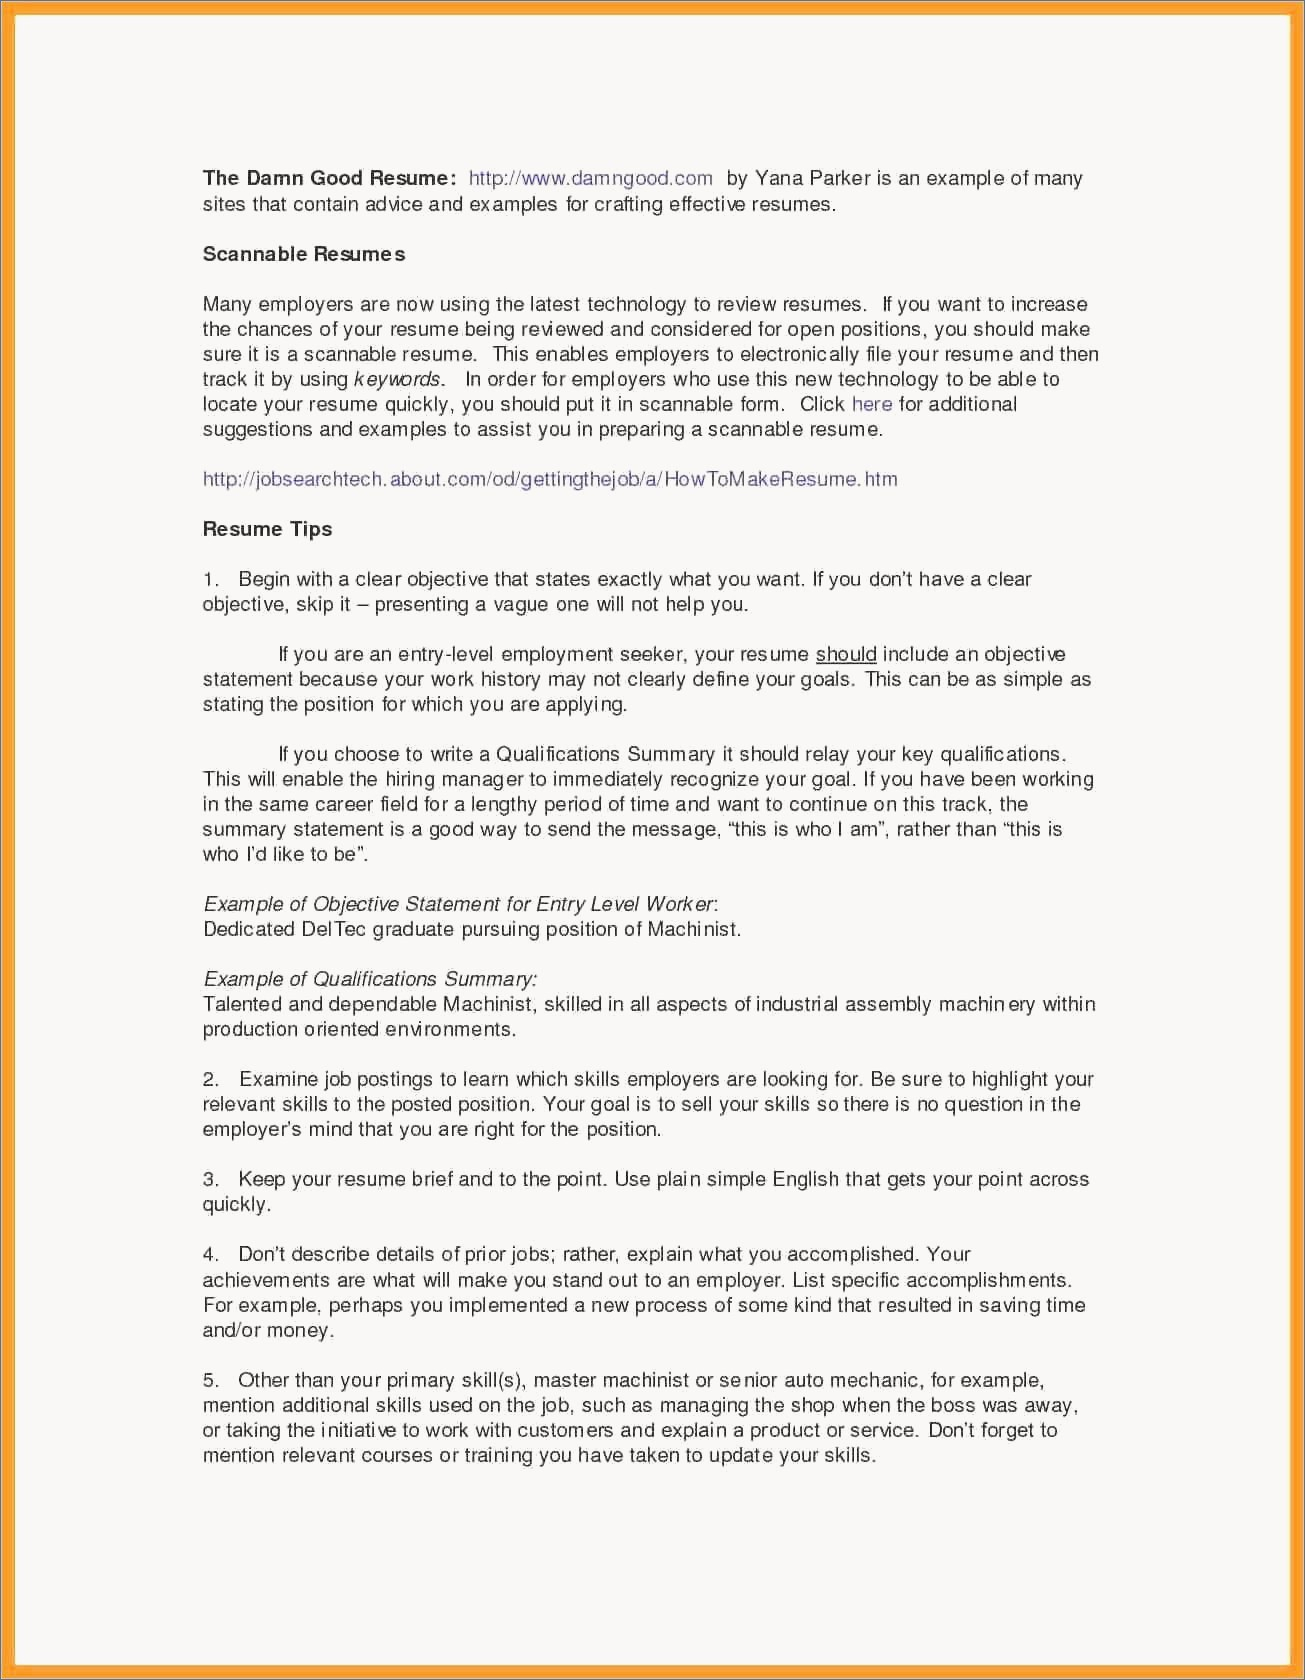 Sample Resume for Project Manager Position - Senior Project Manager Resume Fresh Sample Resume for Project